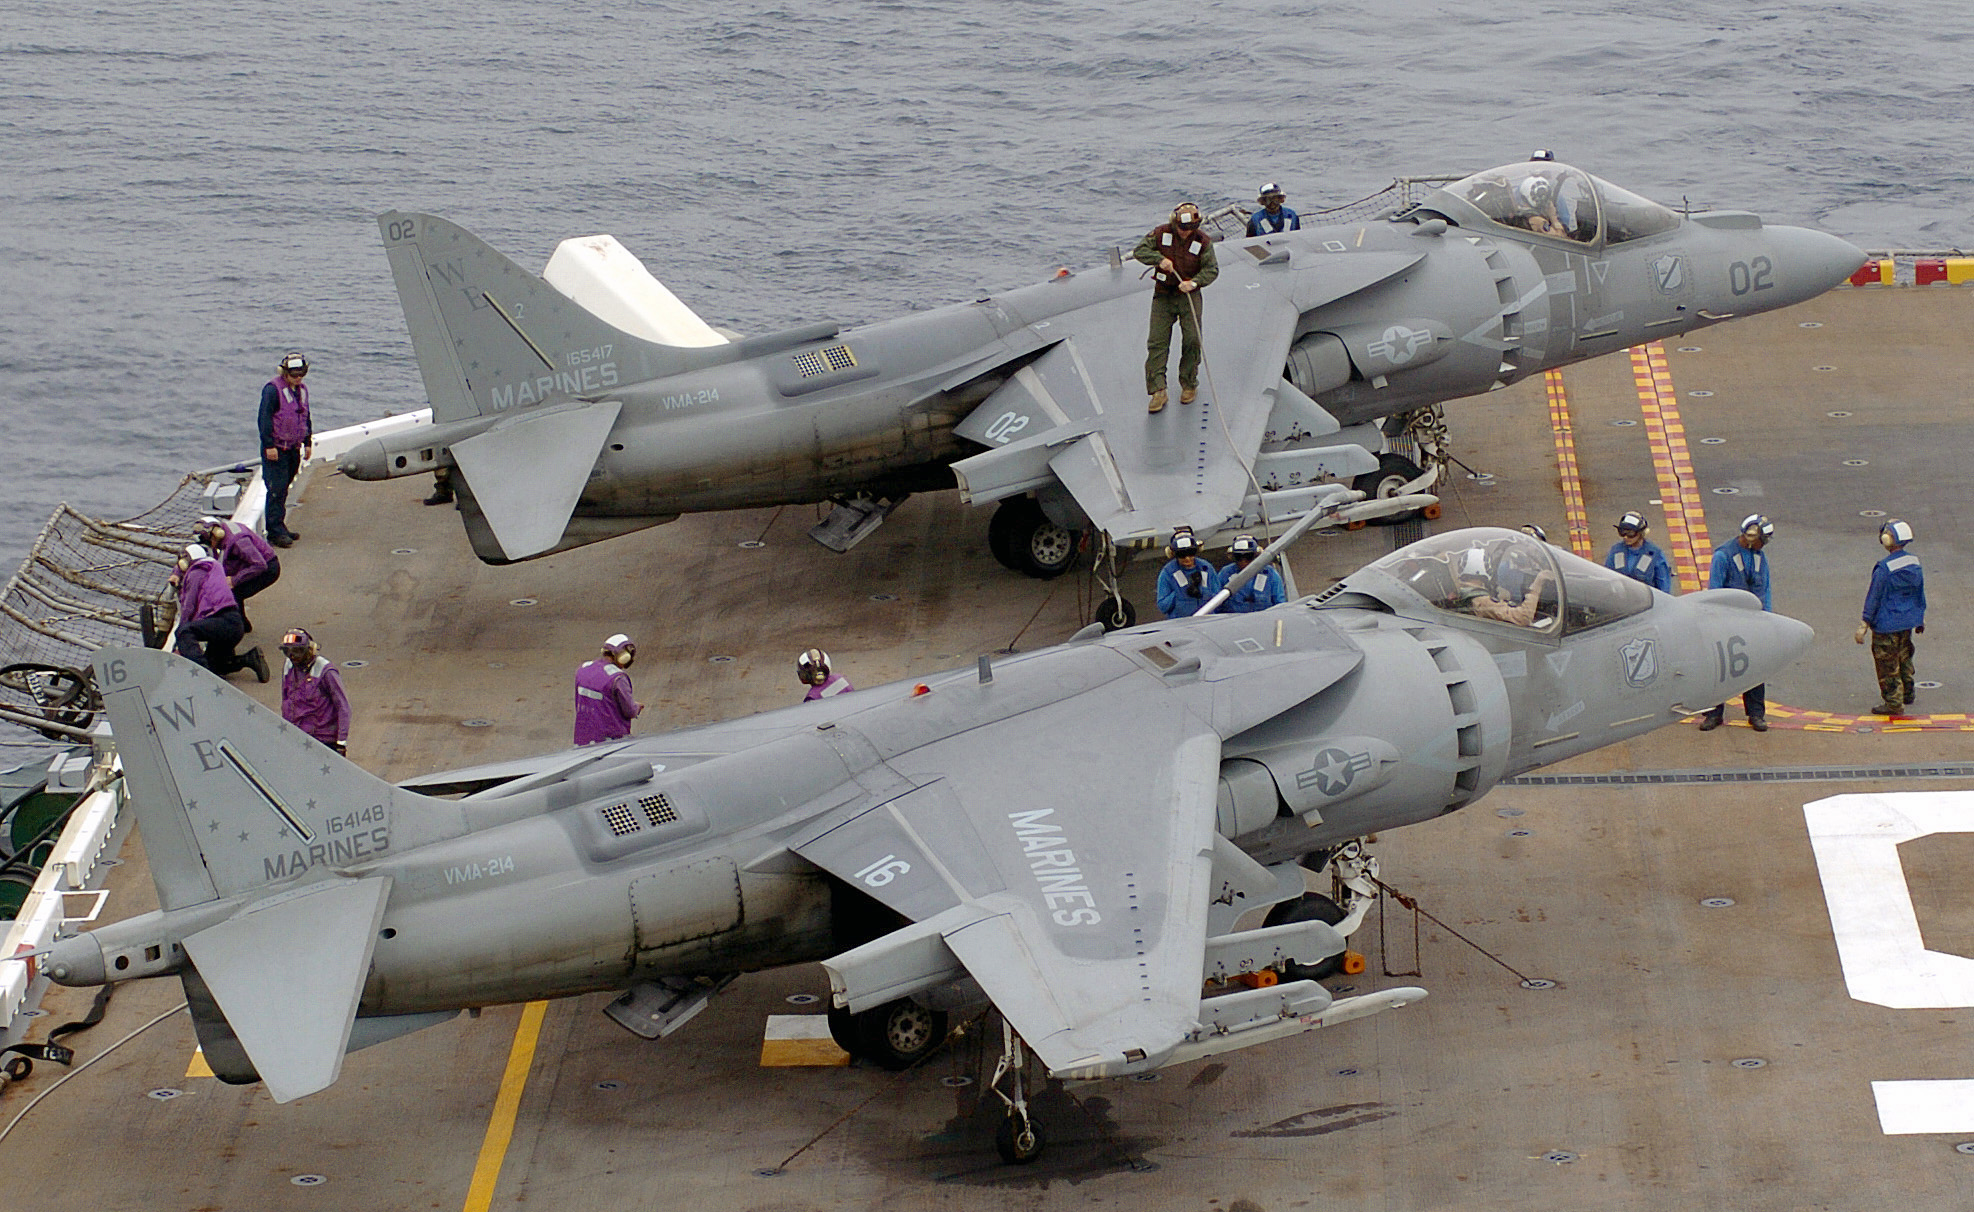 Two Harrier jump-jets of the US Marine Corps. (Taringa.net, n.d.)